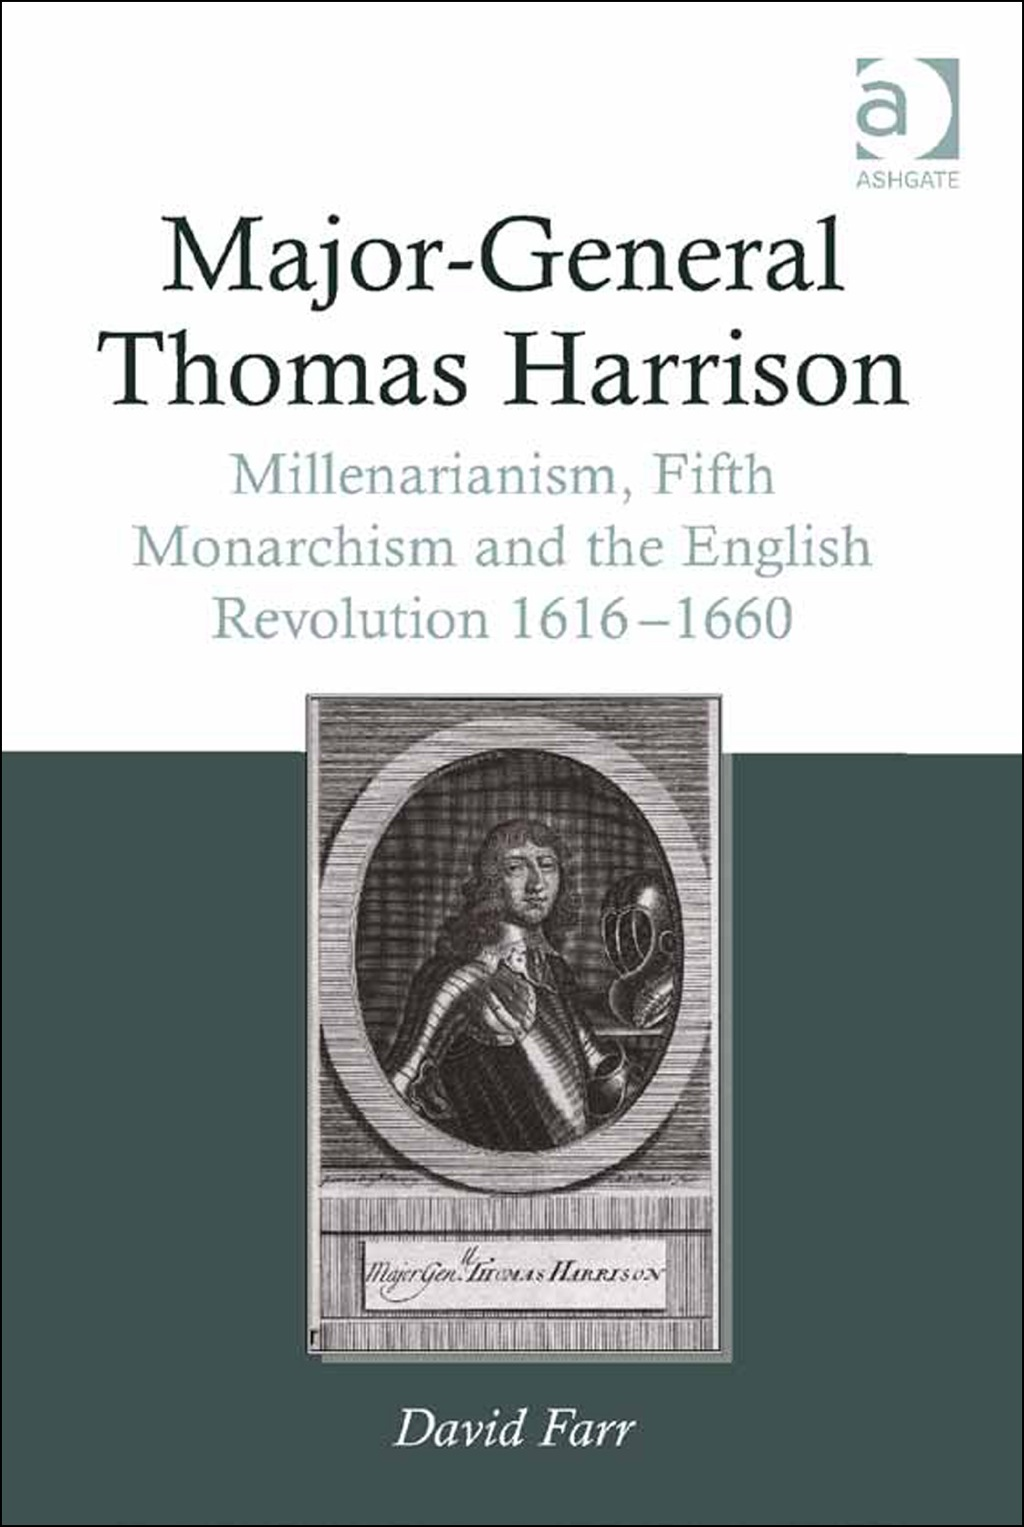 Major-general Thomas Harrison: Millenarianism  Fifth Monarchism And The English Revolution 1616-1660 (ebook)